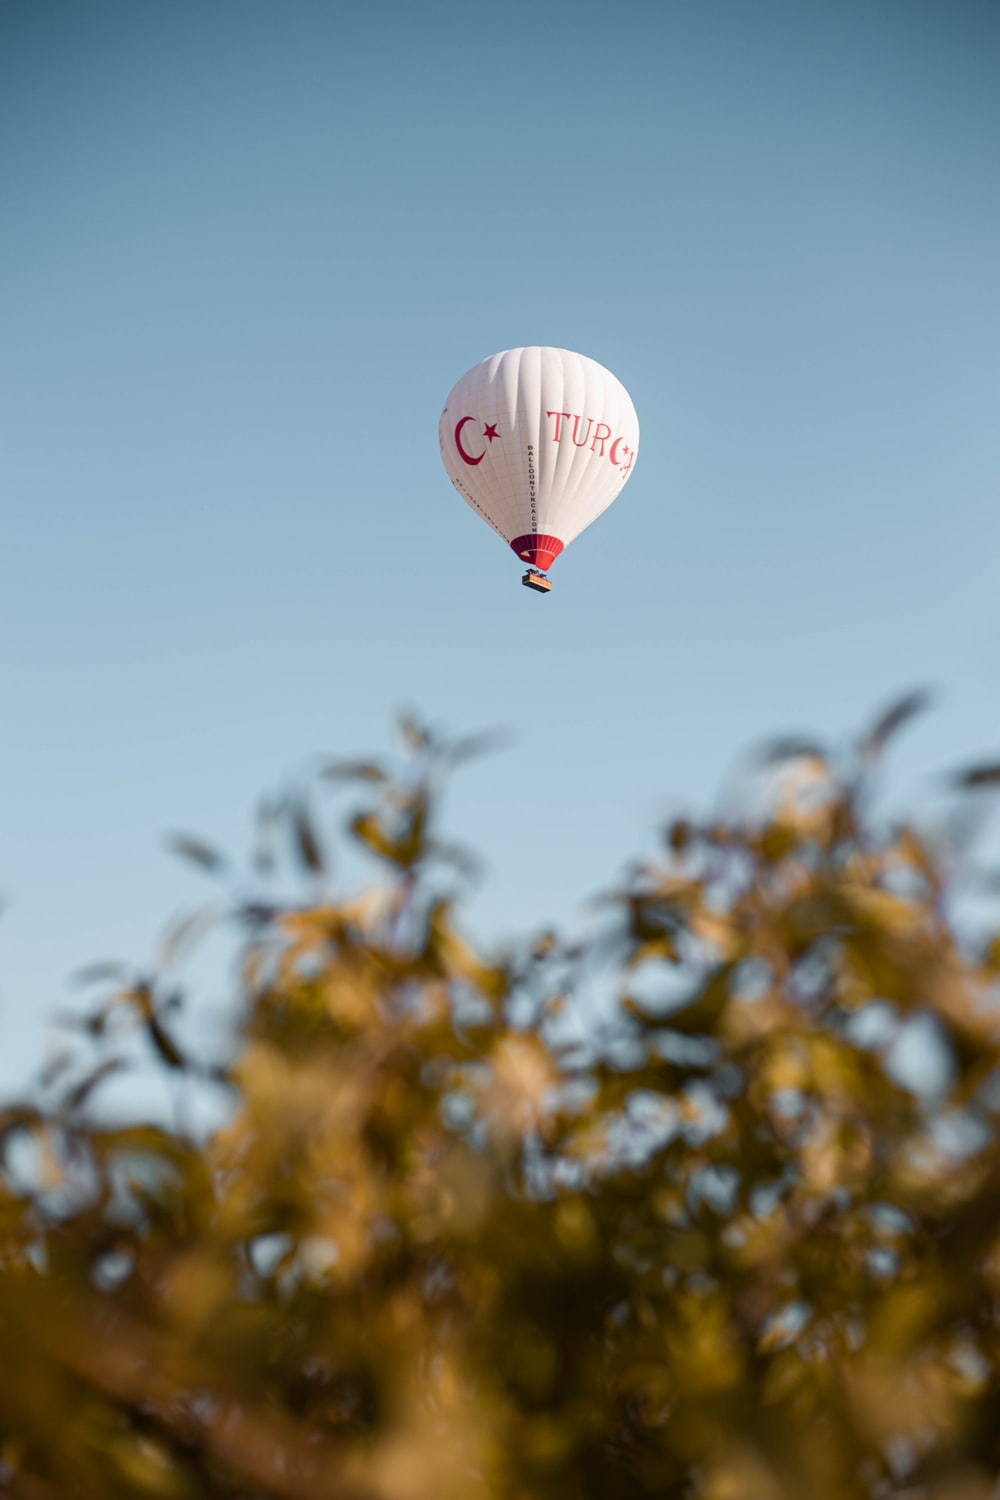 white and red hot air balloon